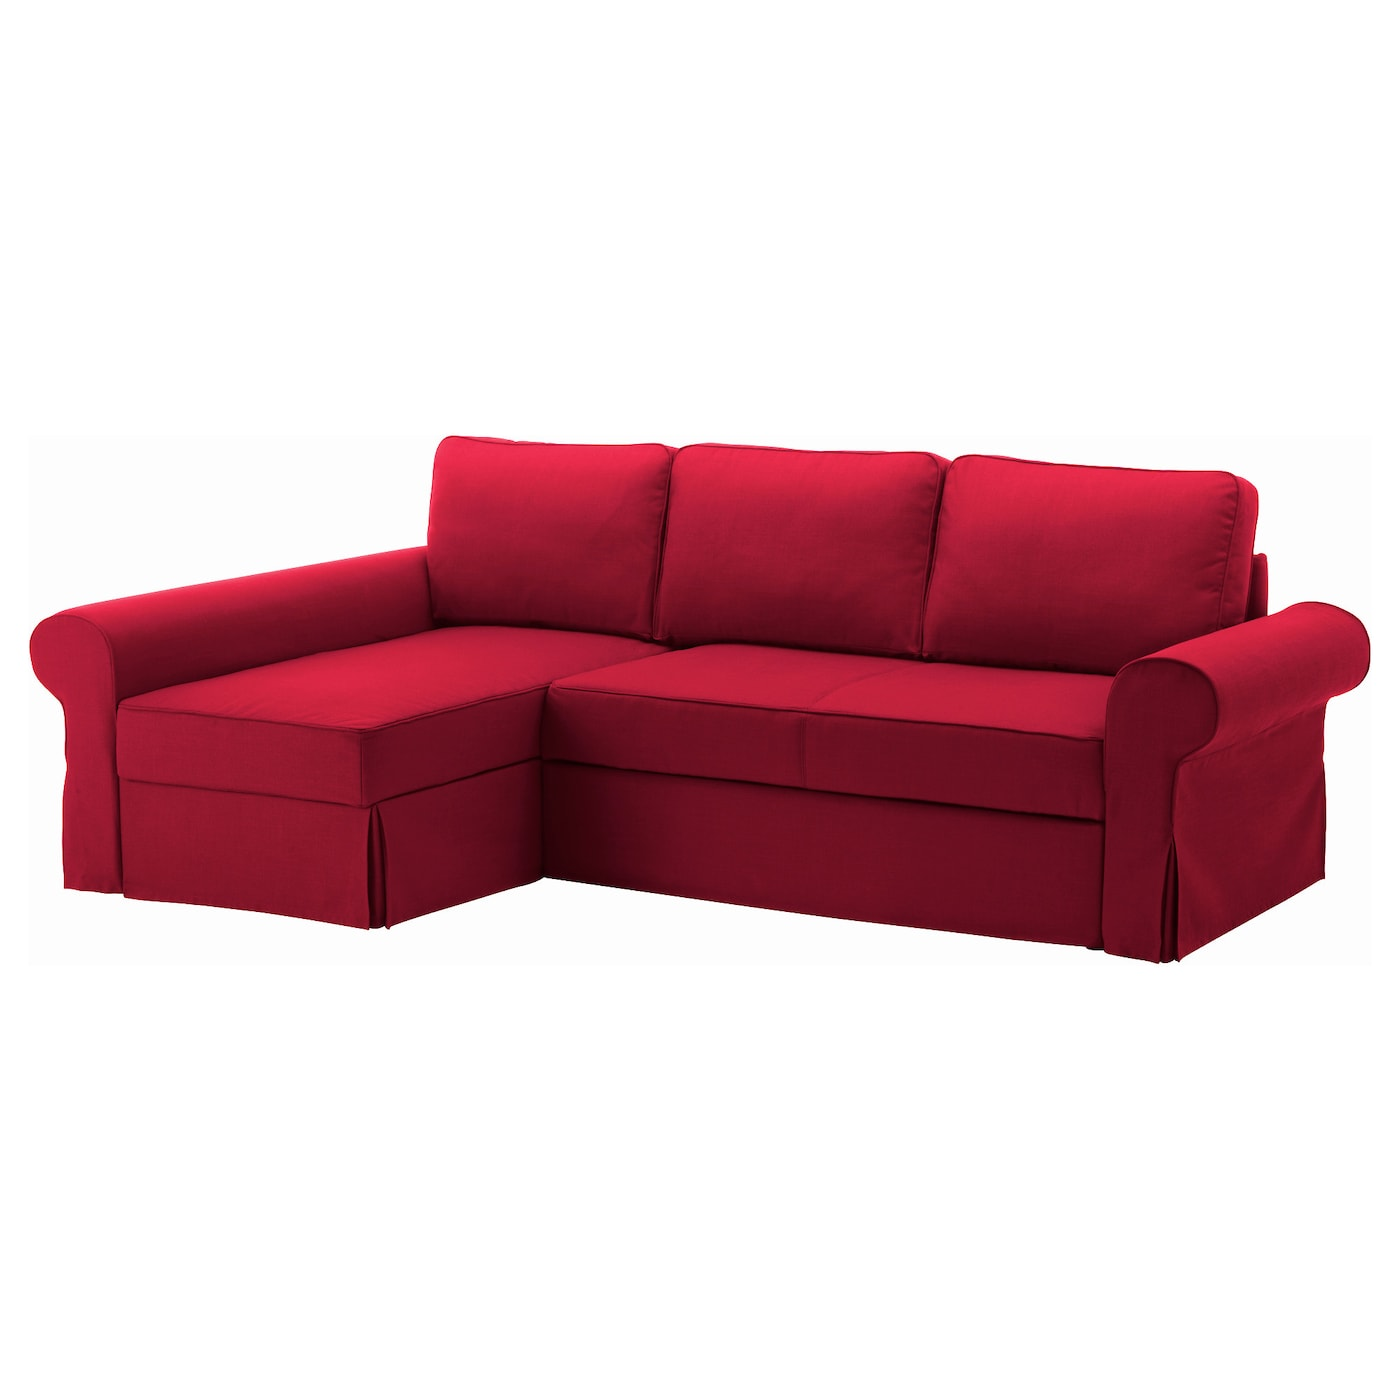 Backabro sofa bed with chaise longue nordvalla red ikea for Chaise longue sofa cama